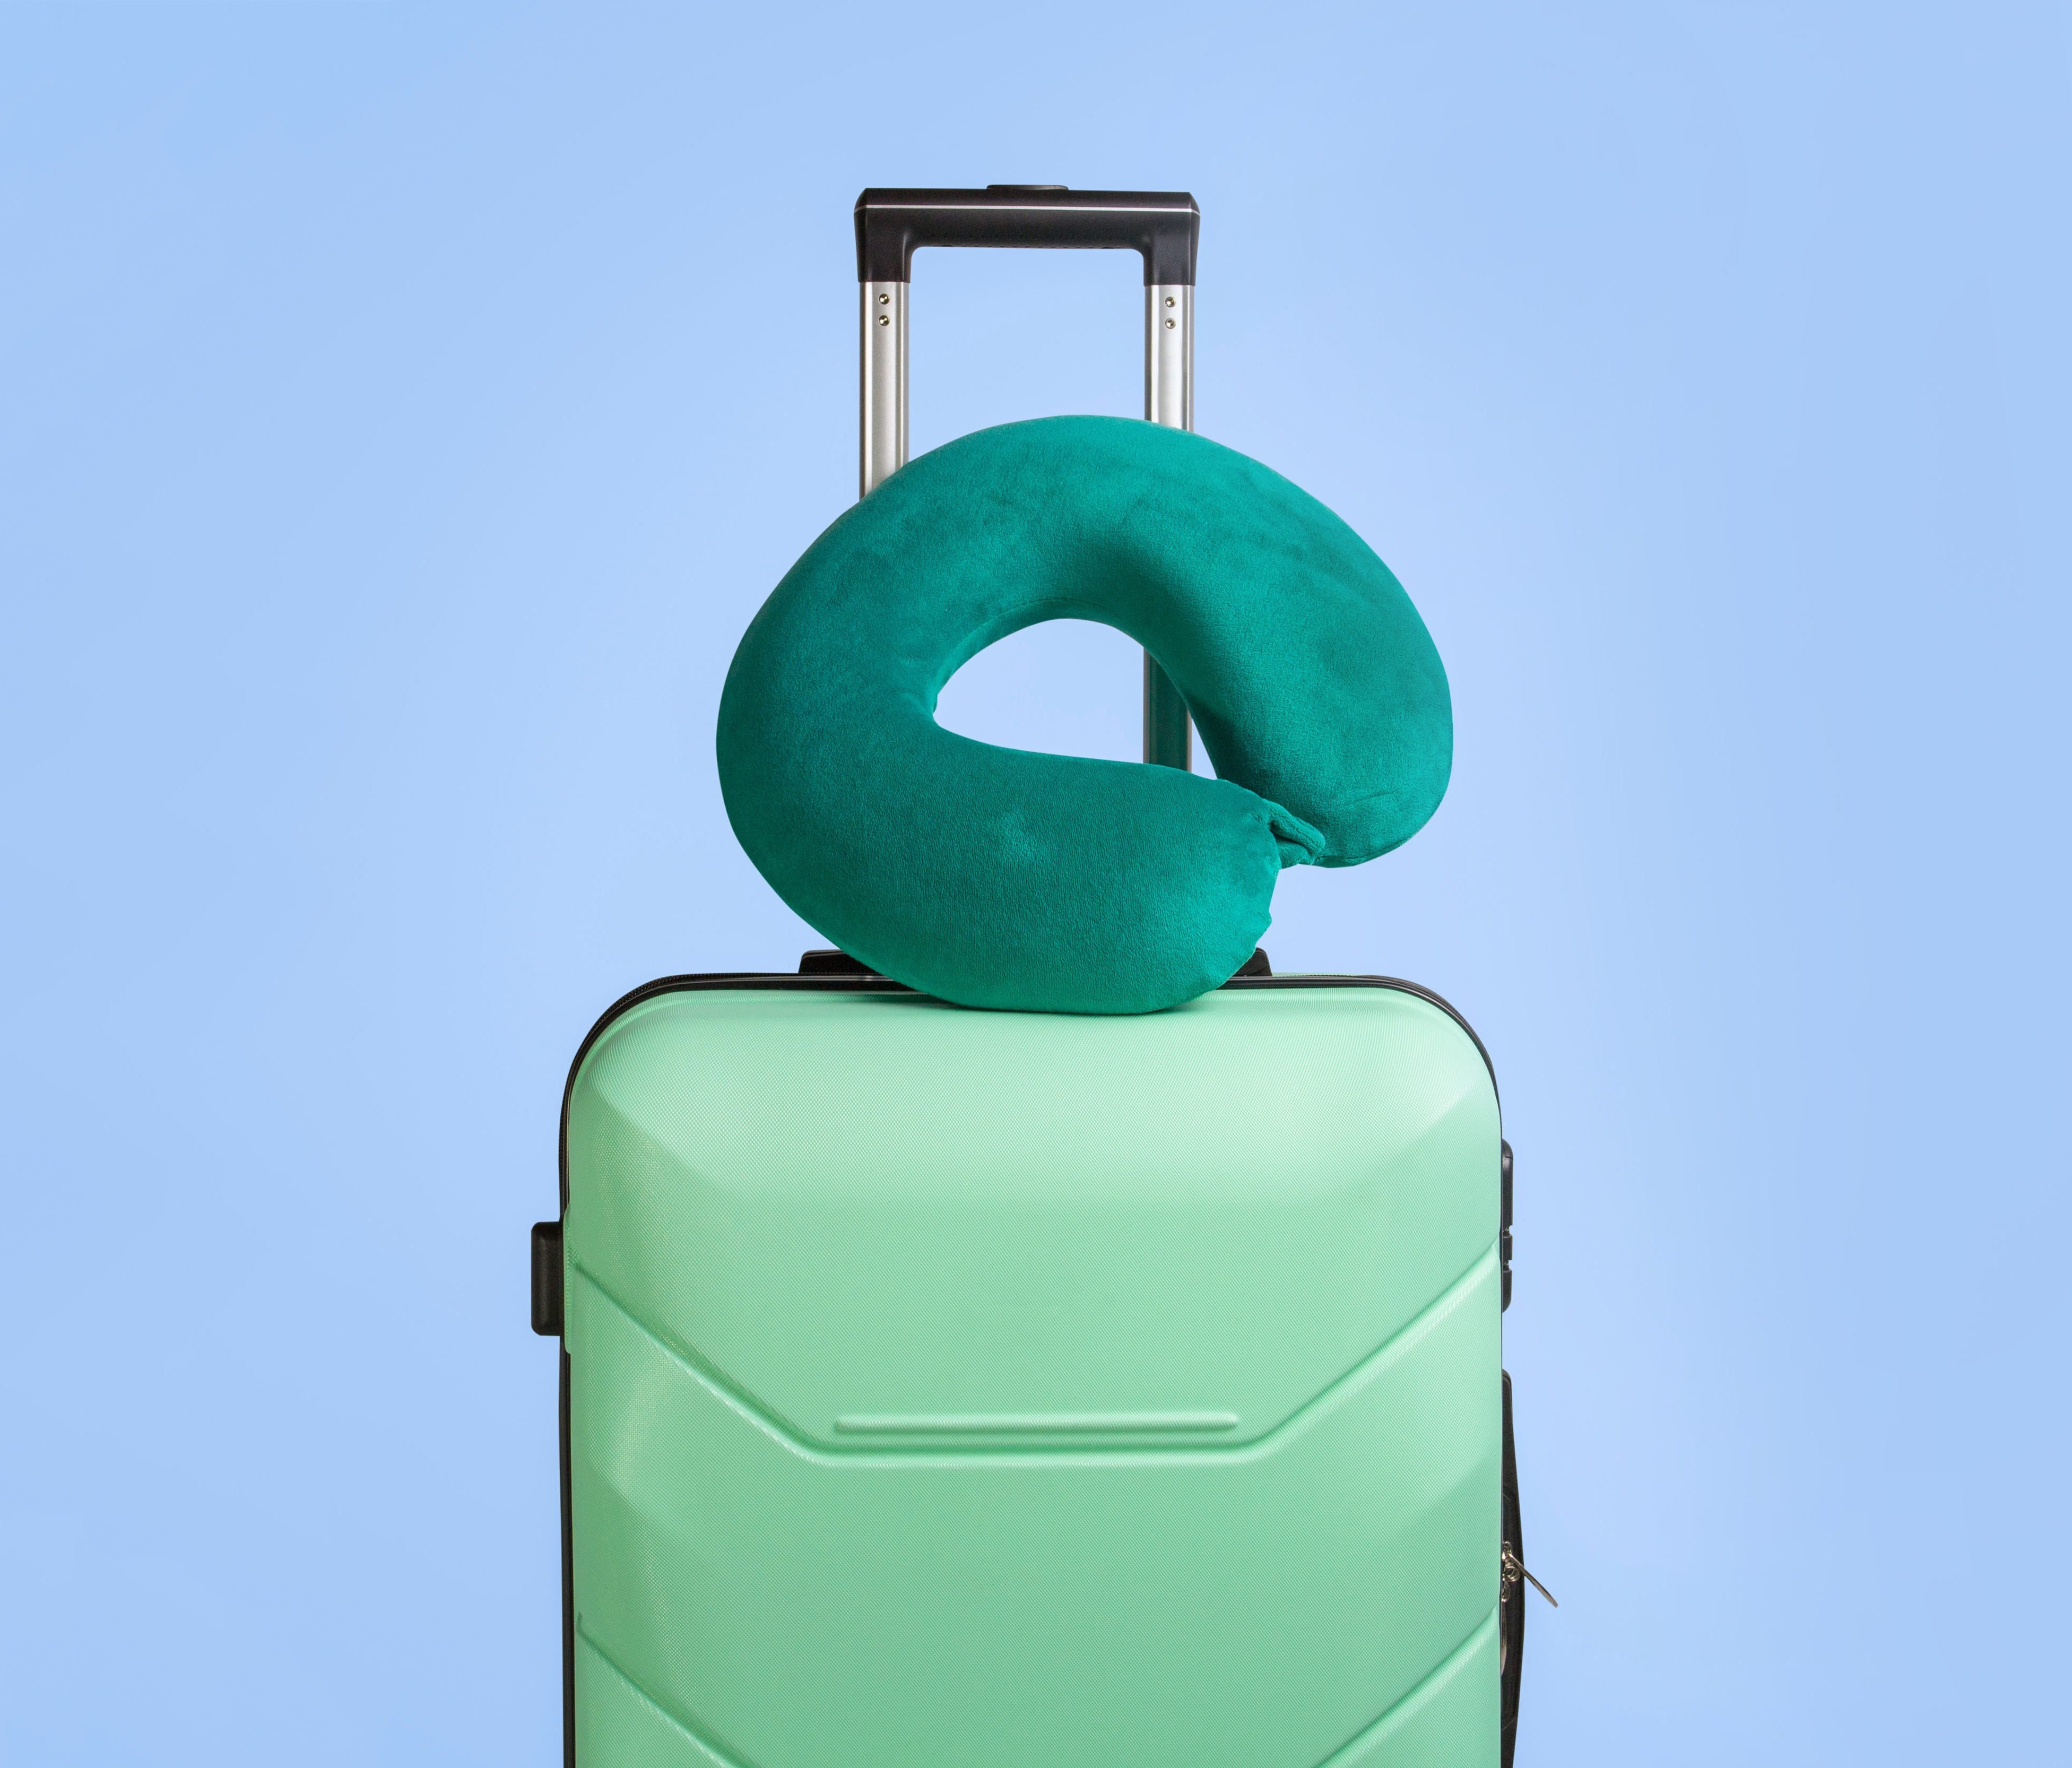 Plastic suitcase and travel pillow on a blue background. Concept of travel, business trips, trips to visit friends and relatives; Shutterstock ID 1339295669; Job (TFH, TOH, RD, BNB, CWM, CM): -